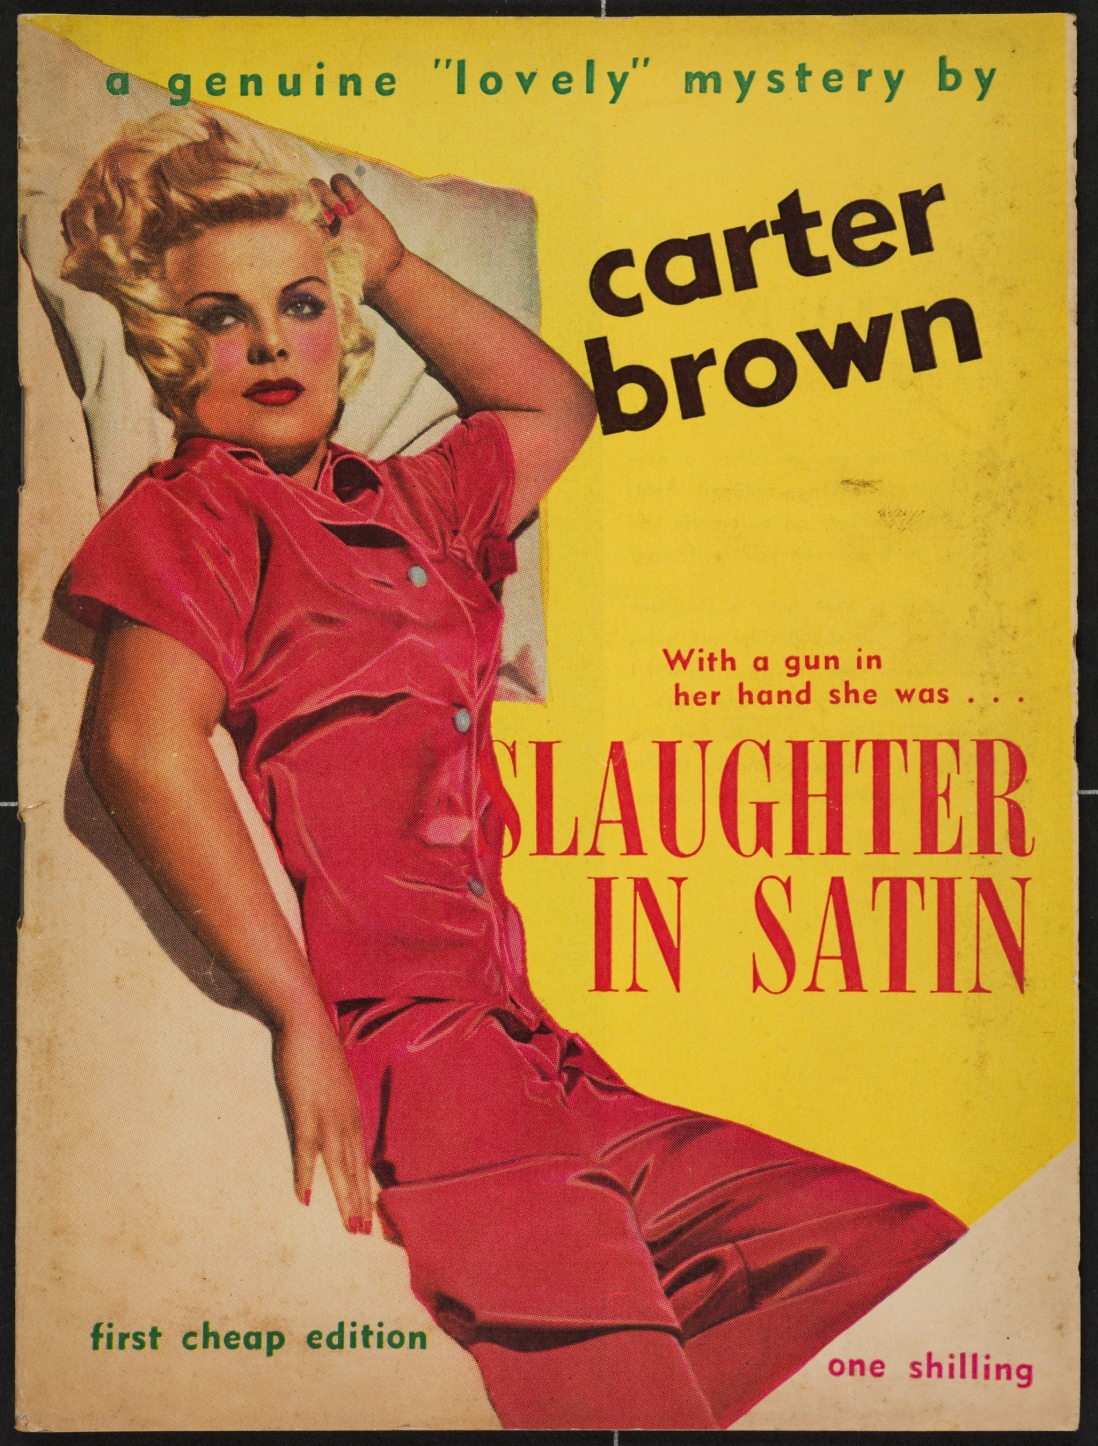 Book cover showing a blonde lady in red stain dress lying back on a bed.